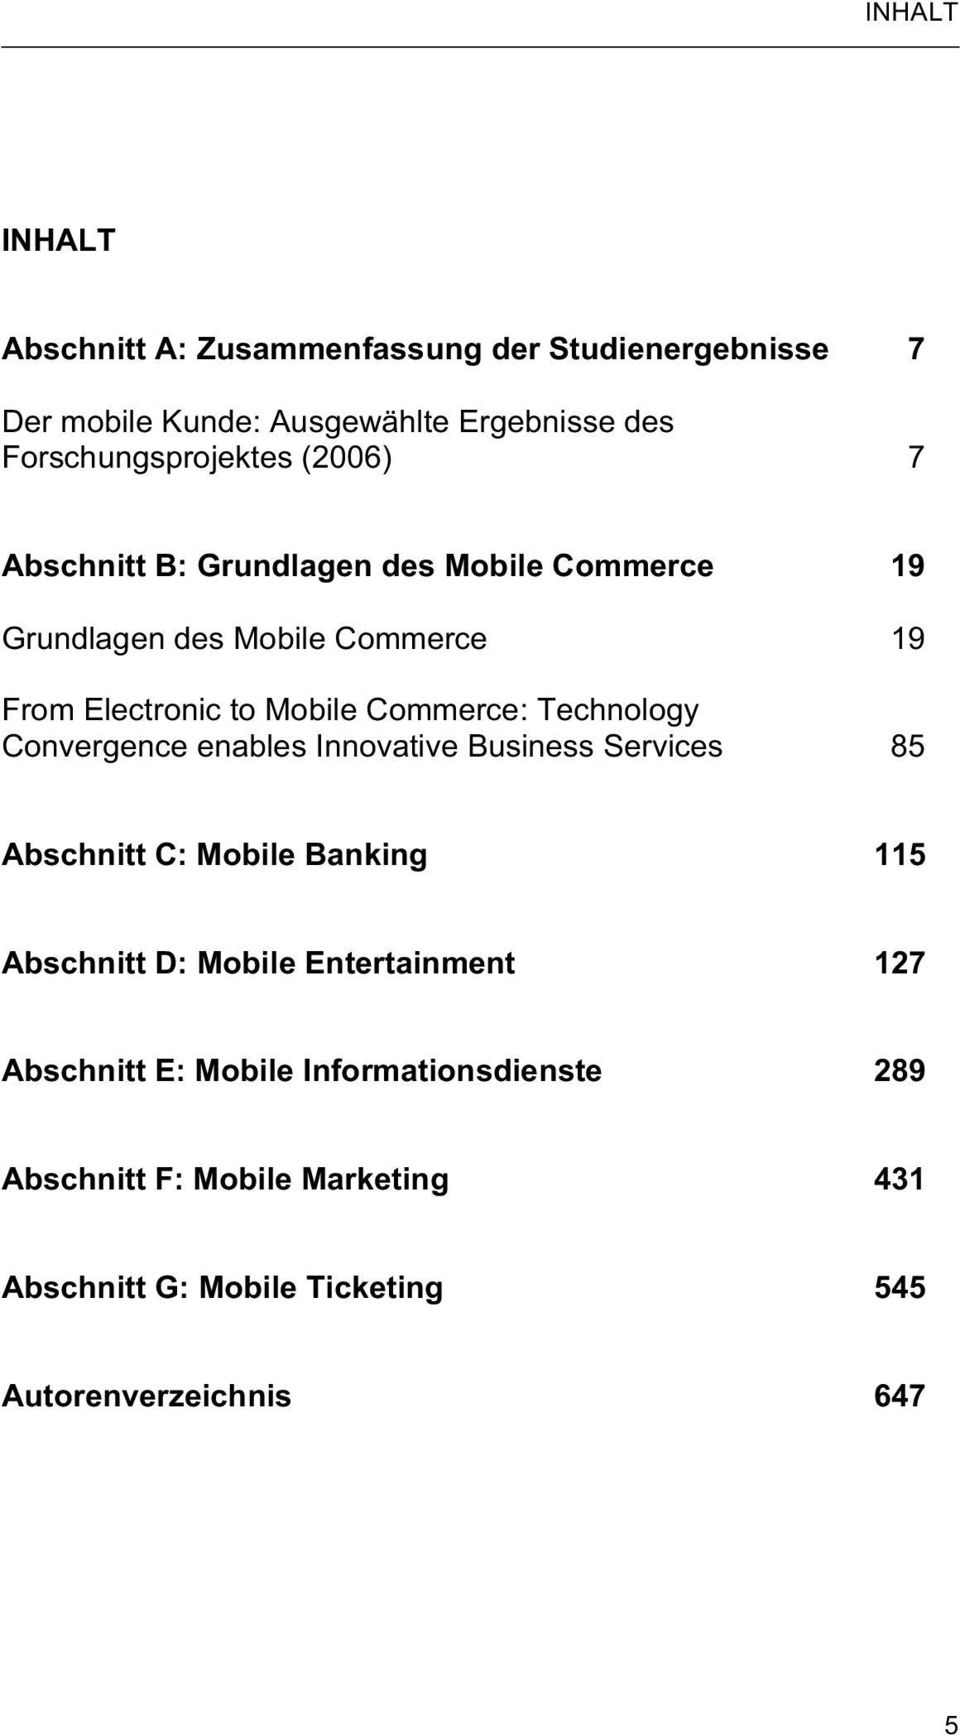 Technology Convergence enables Innovative Business Services 85 Abschnitt C: Mobile Banking 115 Abschnitt D: Mobile Entertainment